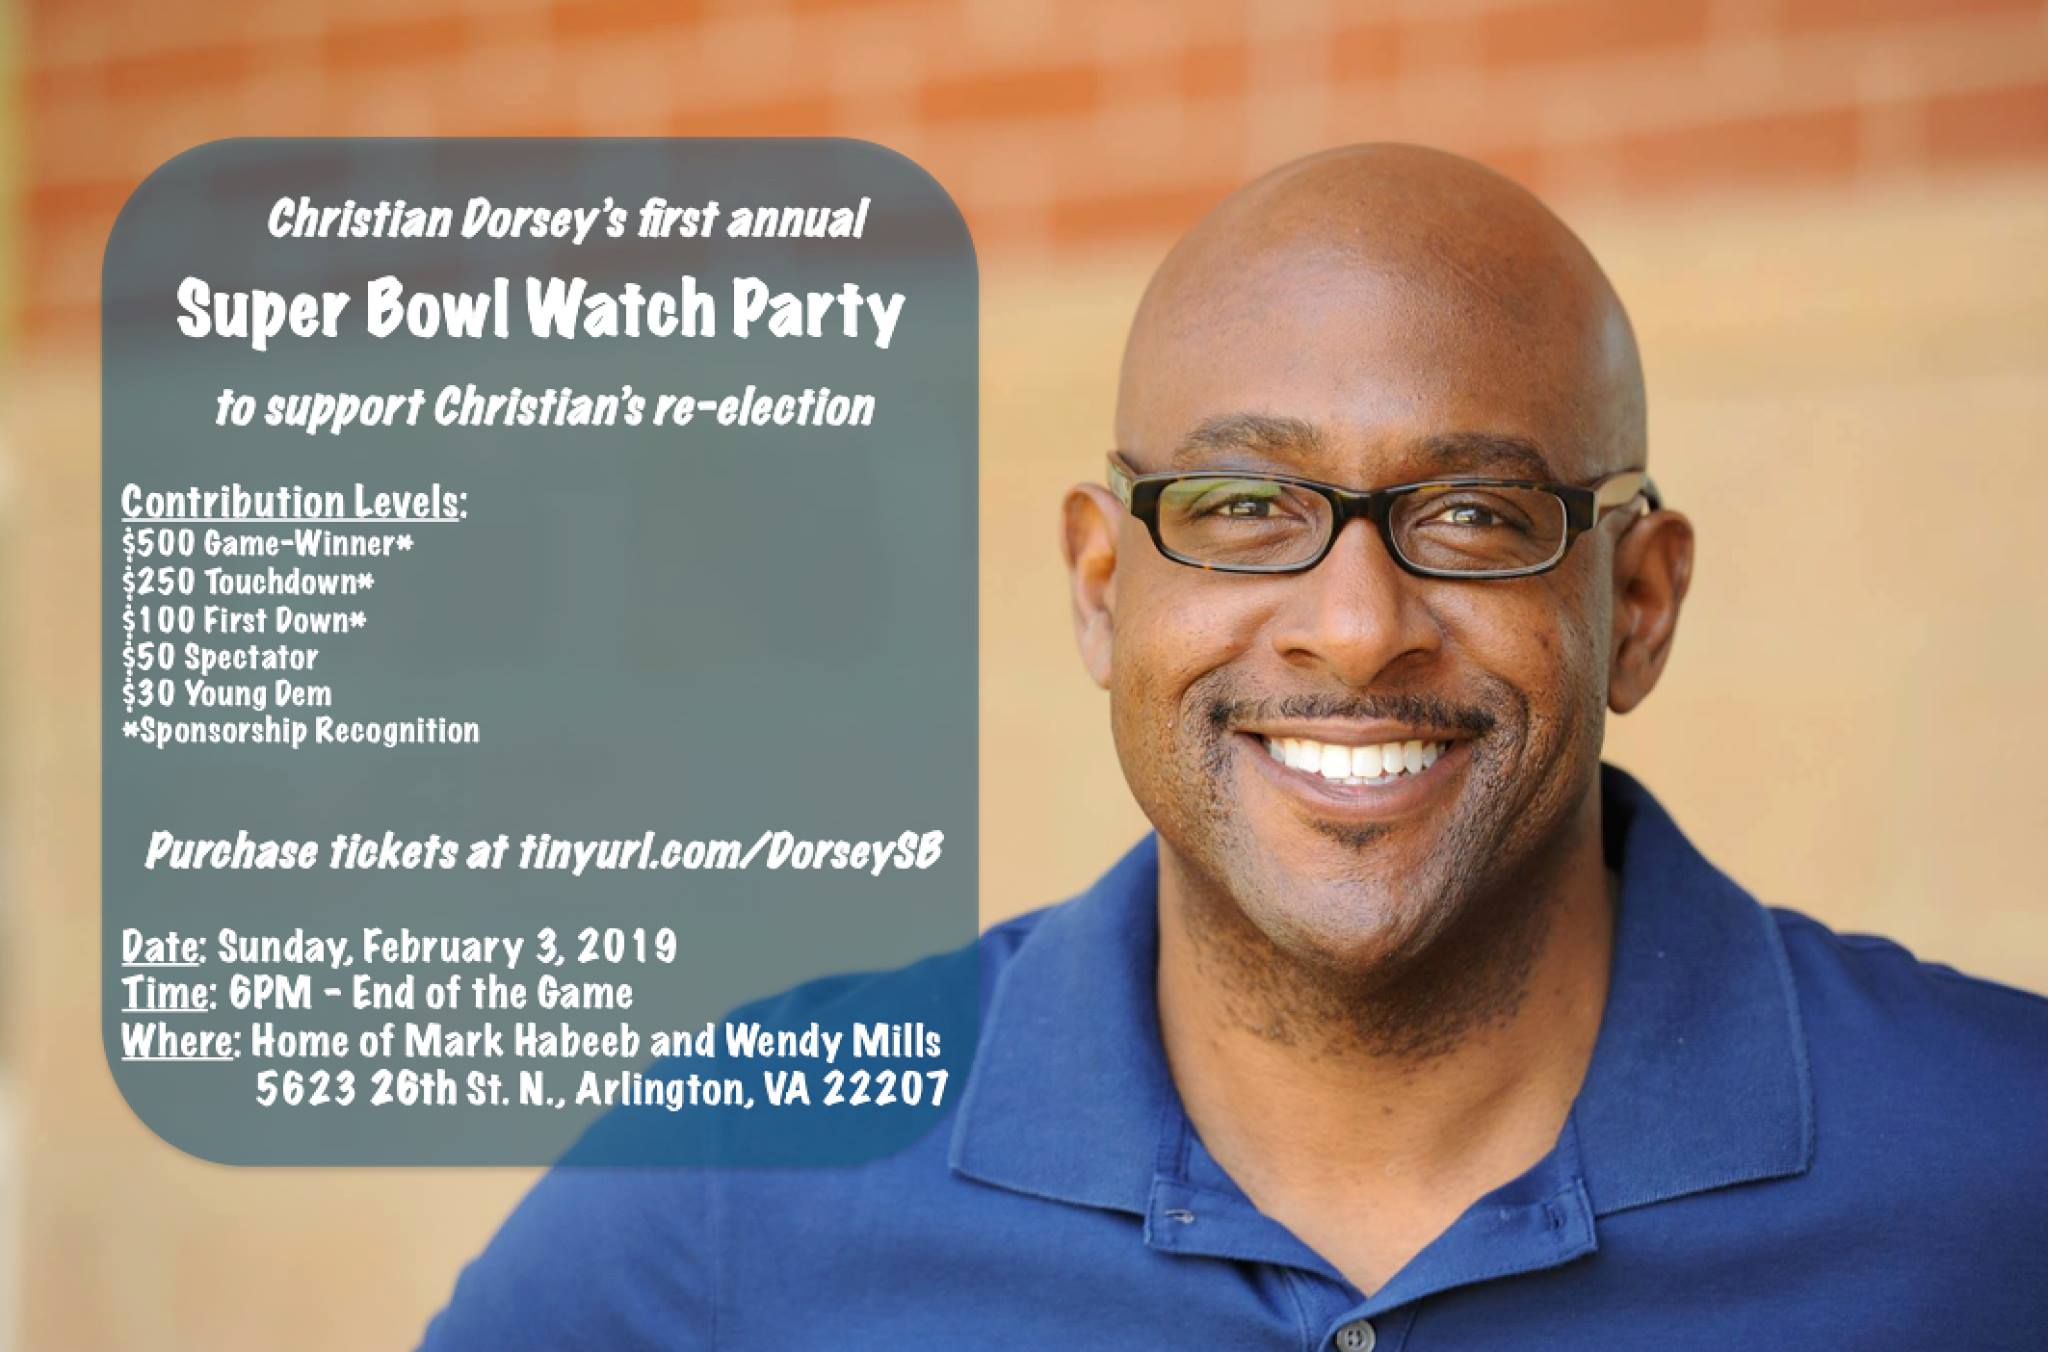 Christian Dorsey's Super Bowl Watch Party